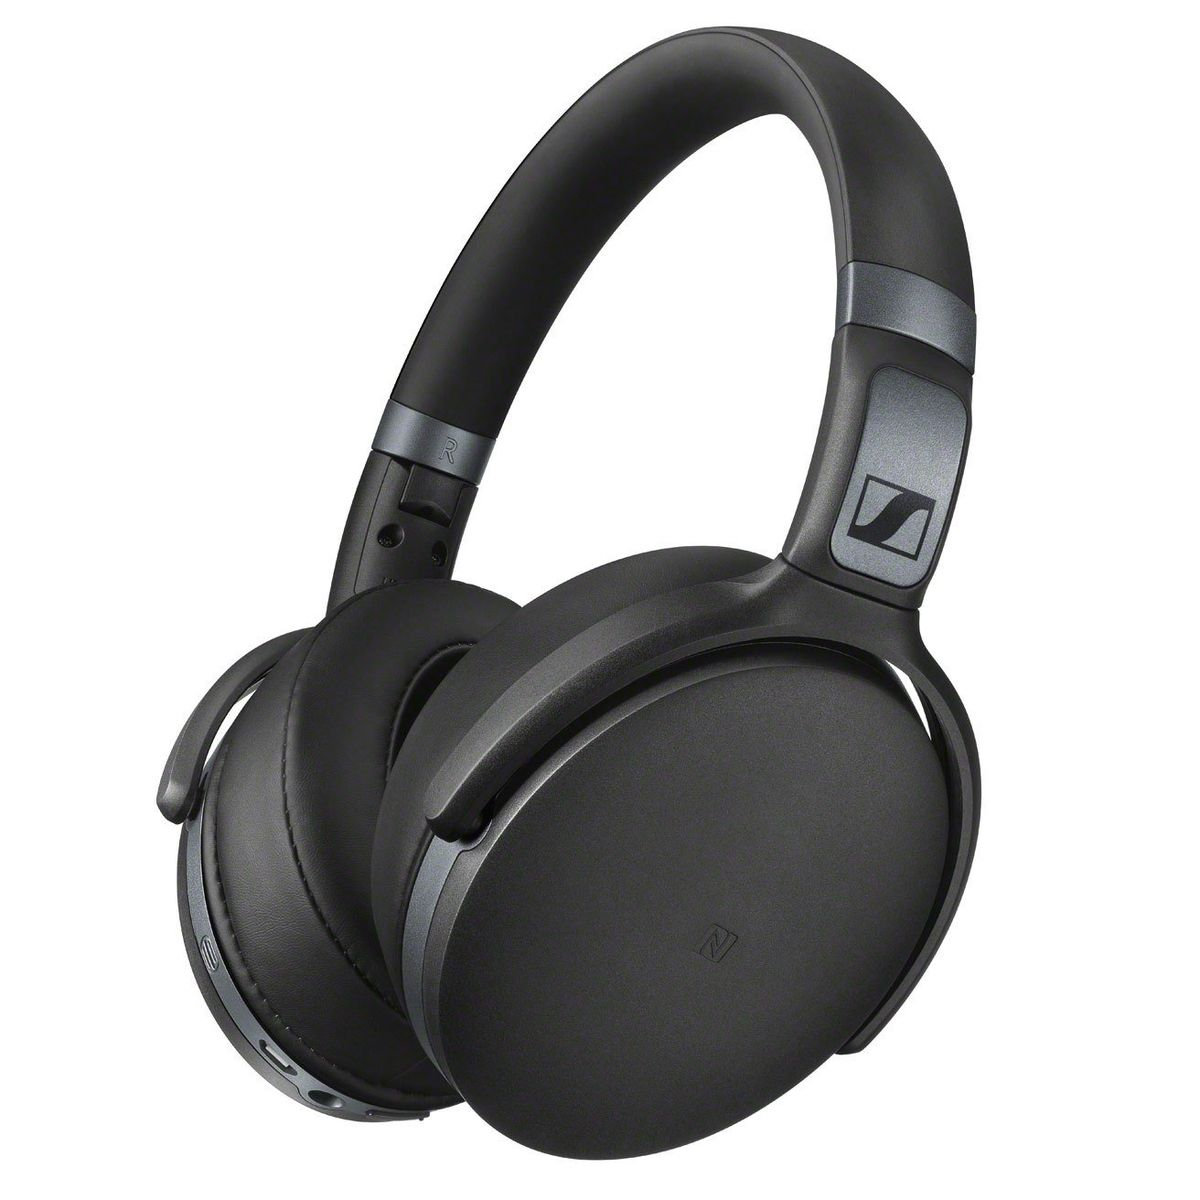 Casque audio sans fil HD 4.40 BT Wireless - Noir